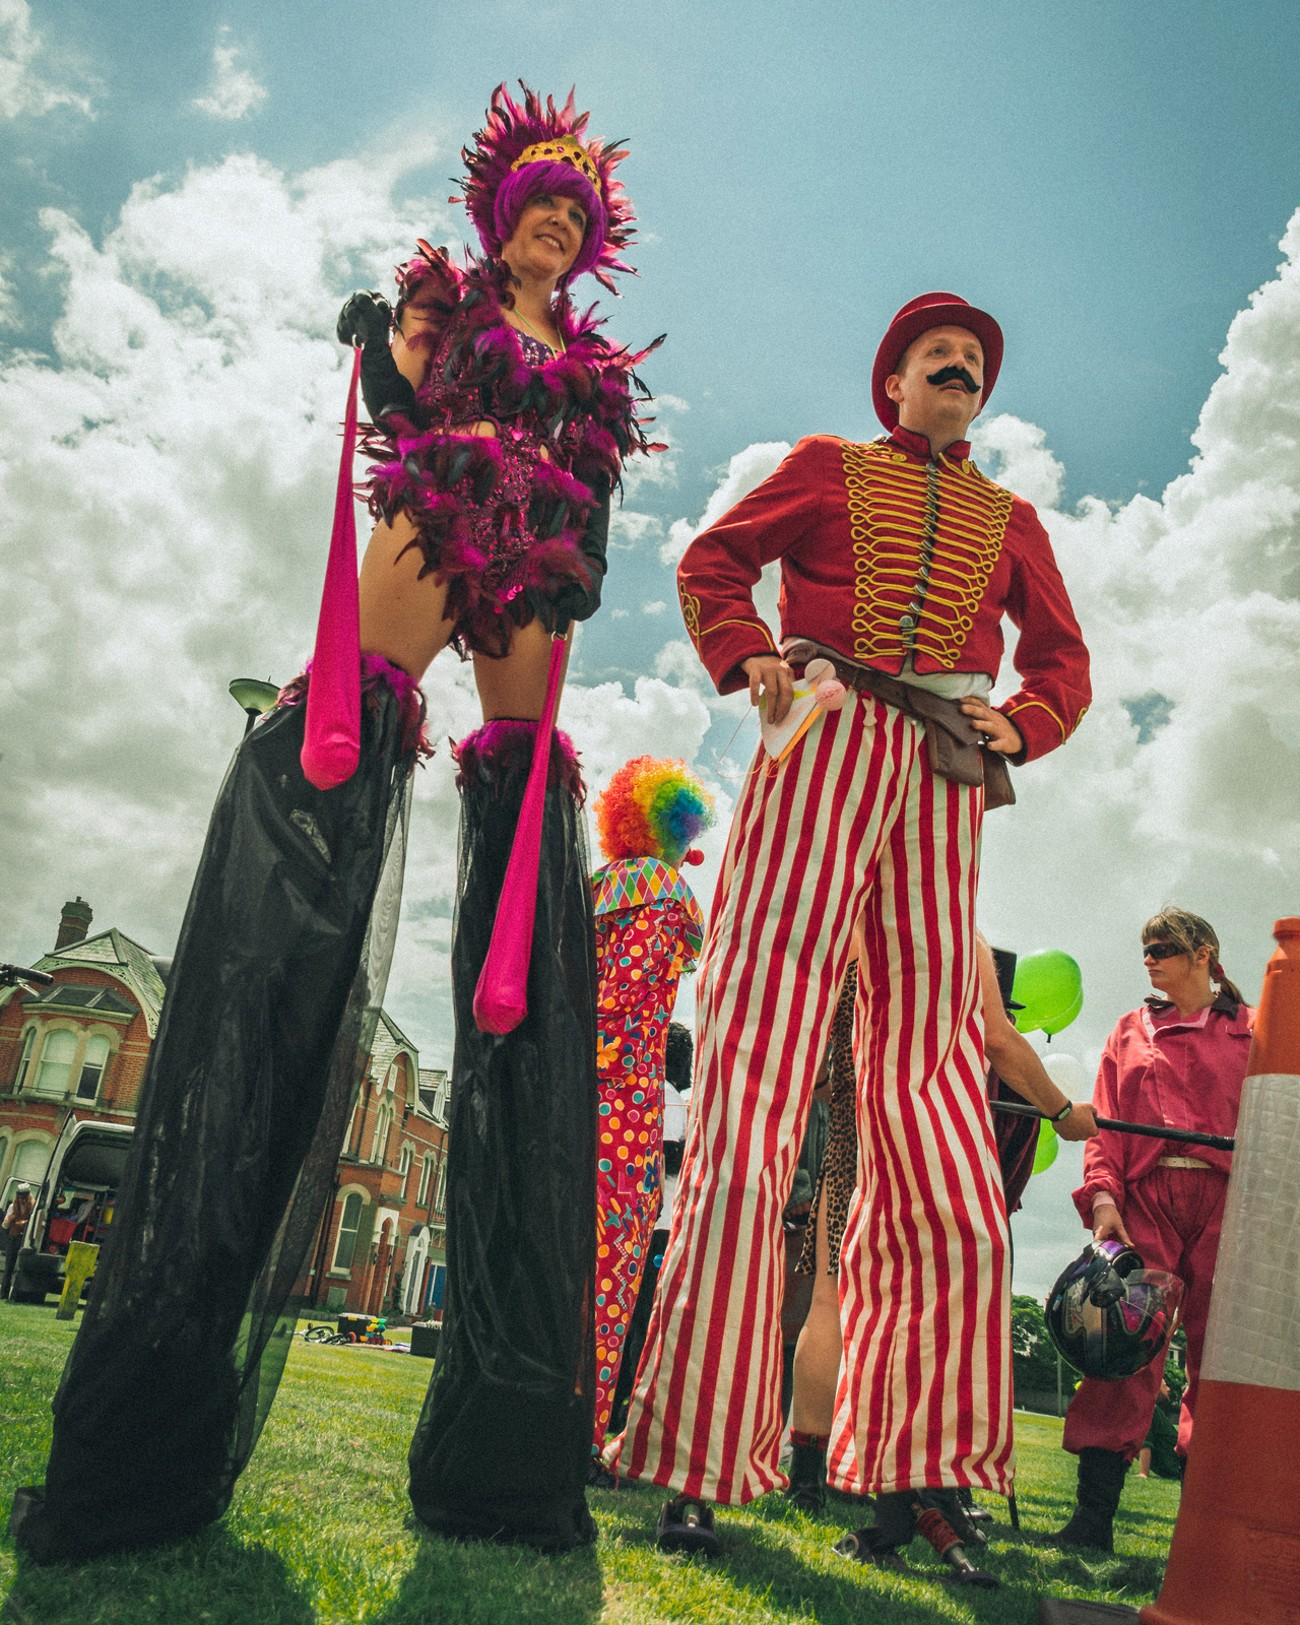 Stilt-walkers at Southwold Arts Festival